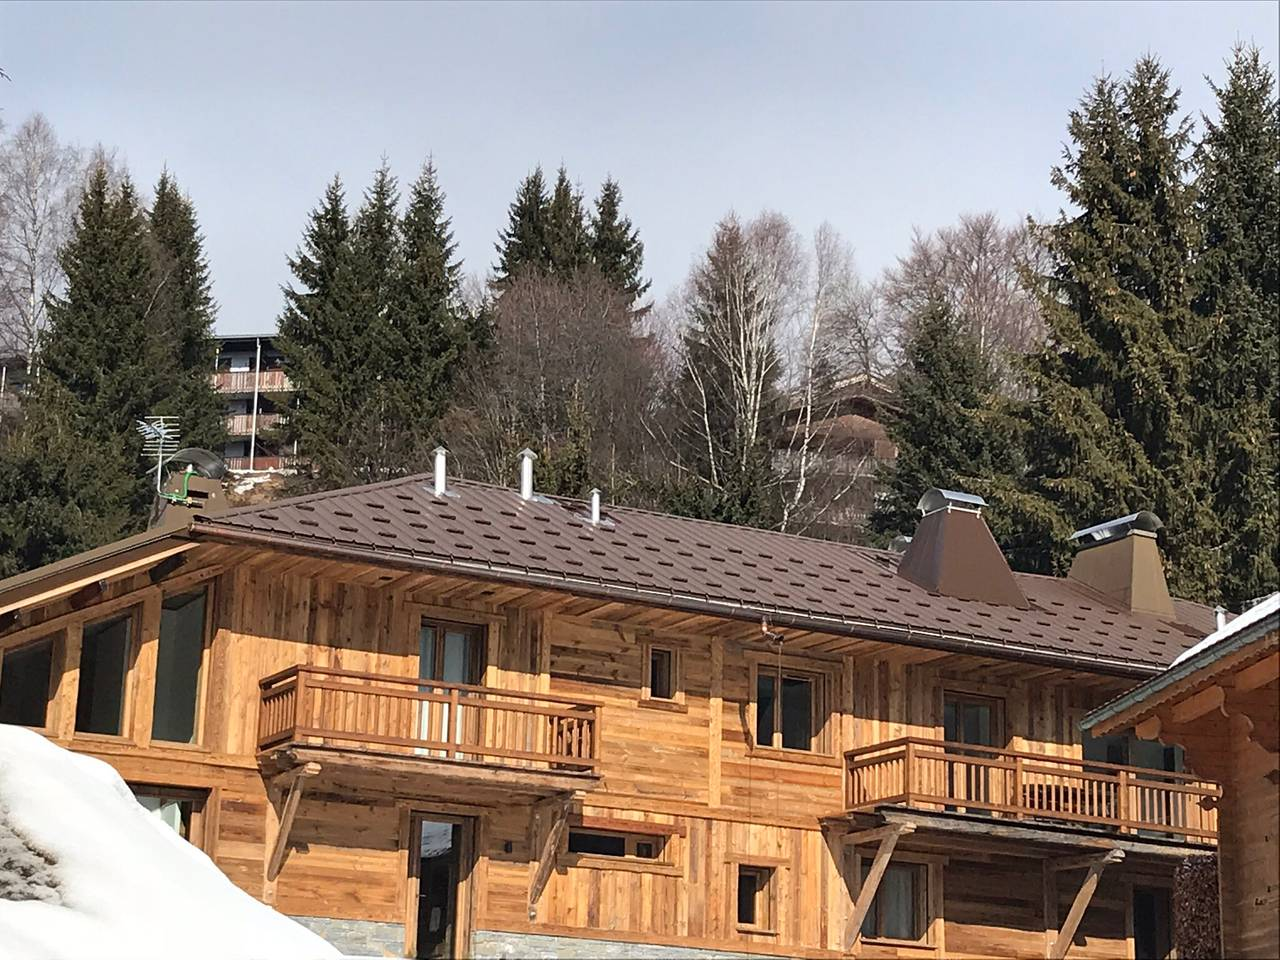 Chalet seen from the garden